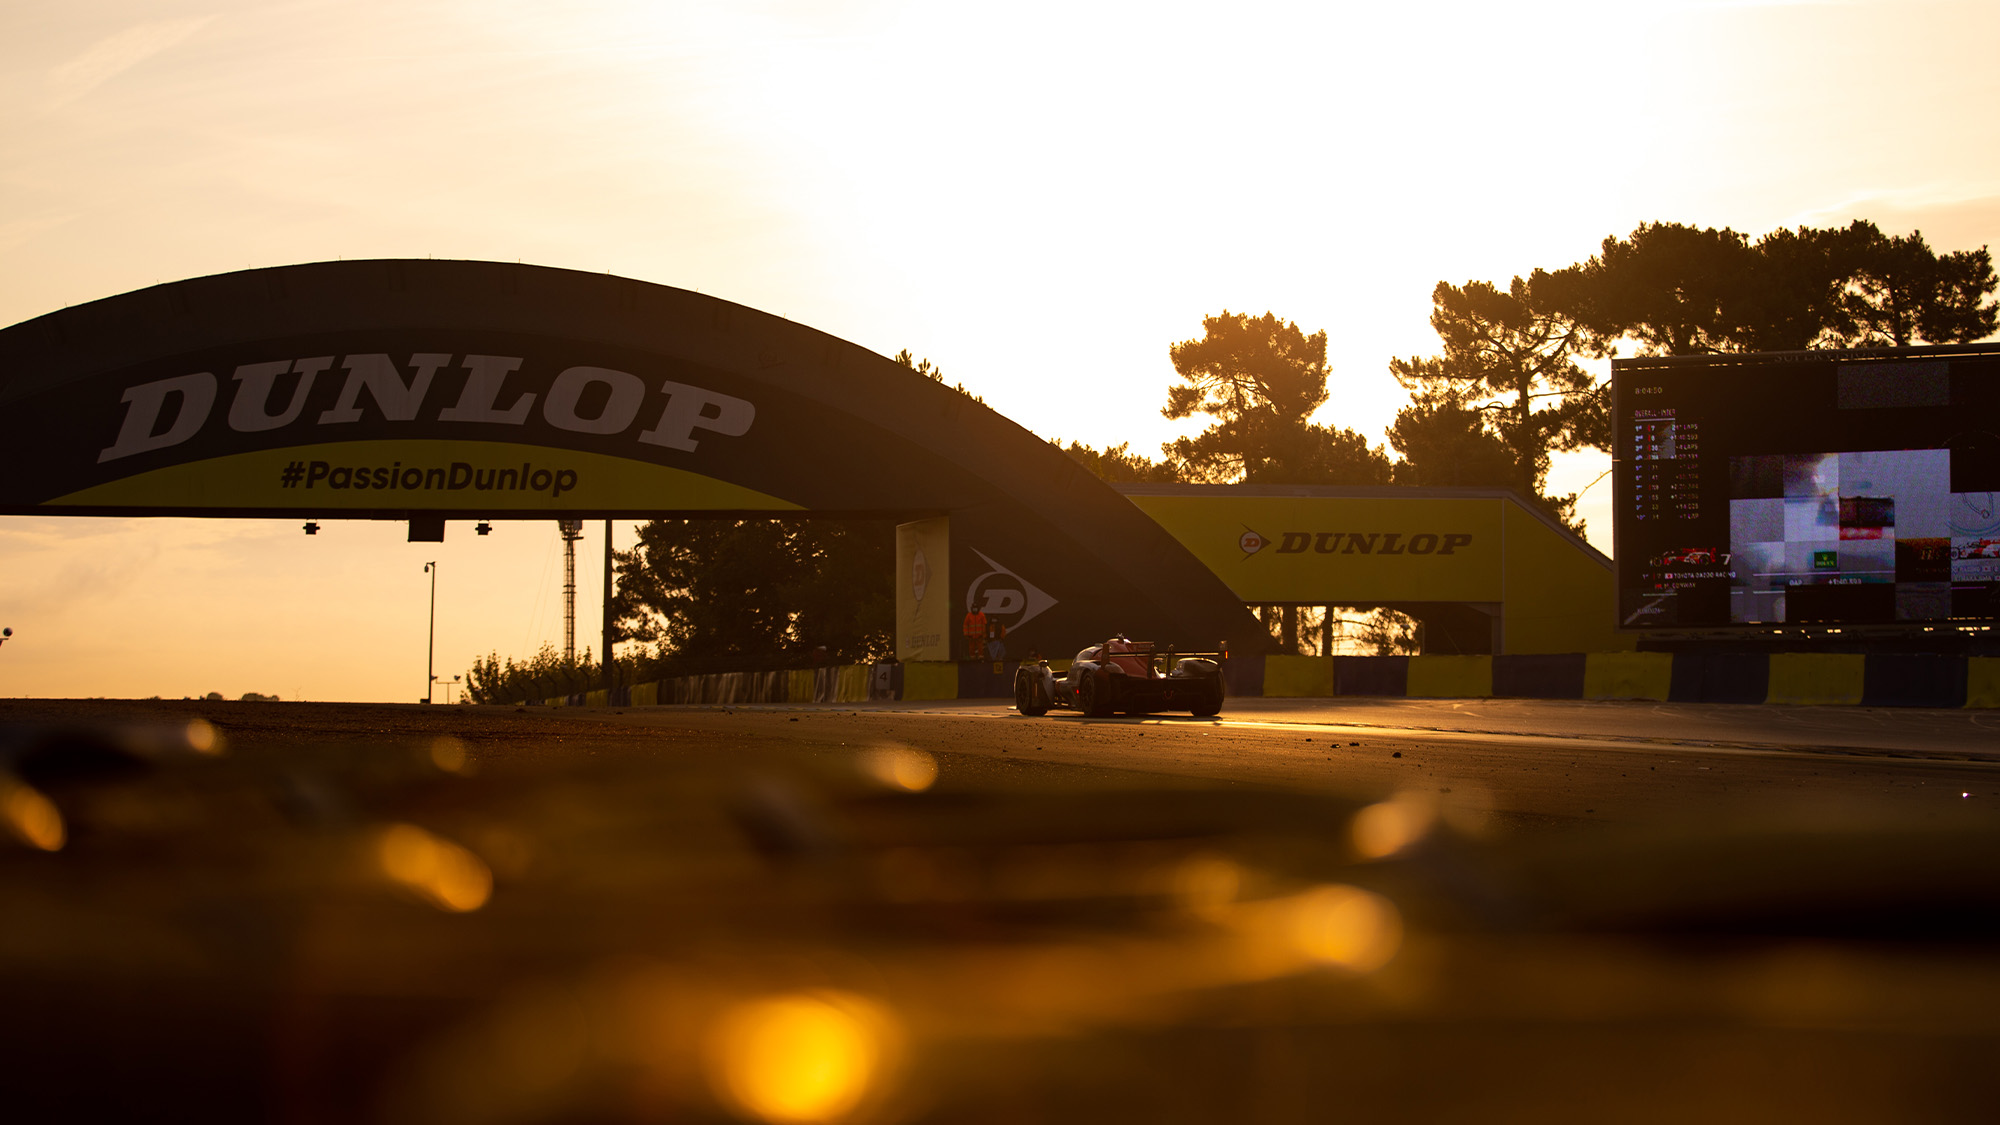 No7 Toyota during sunrise at 2021 Le Mans 24 Hours